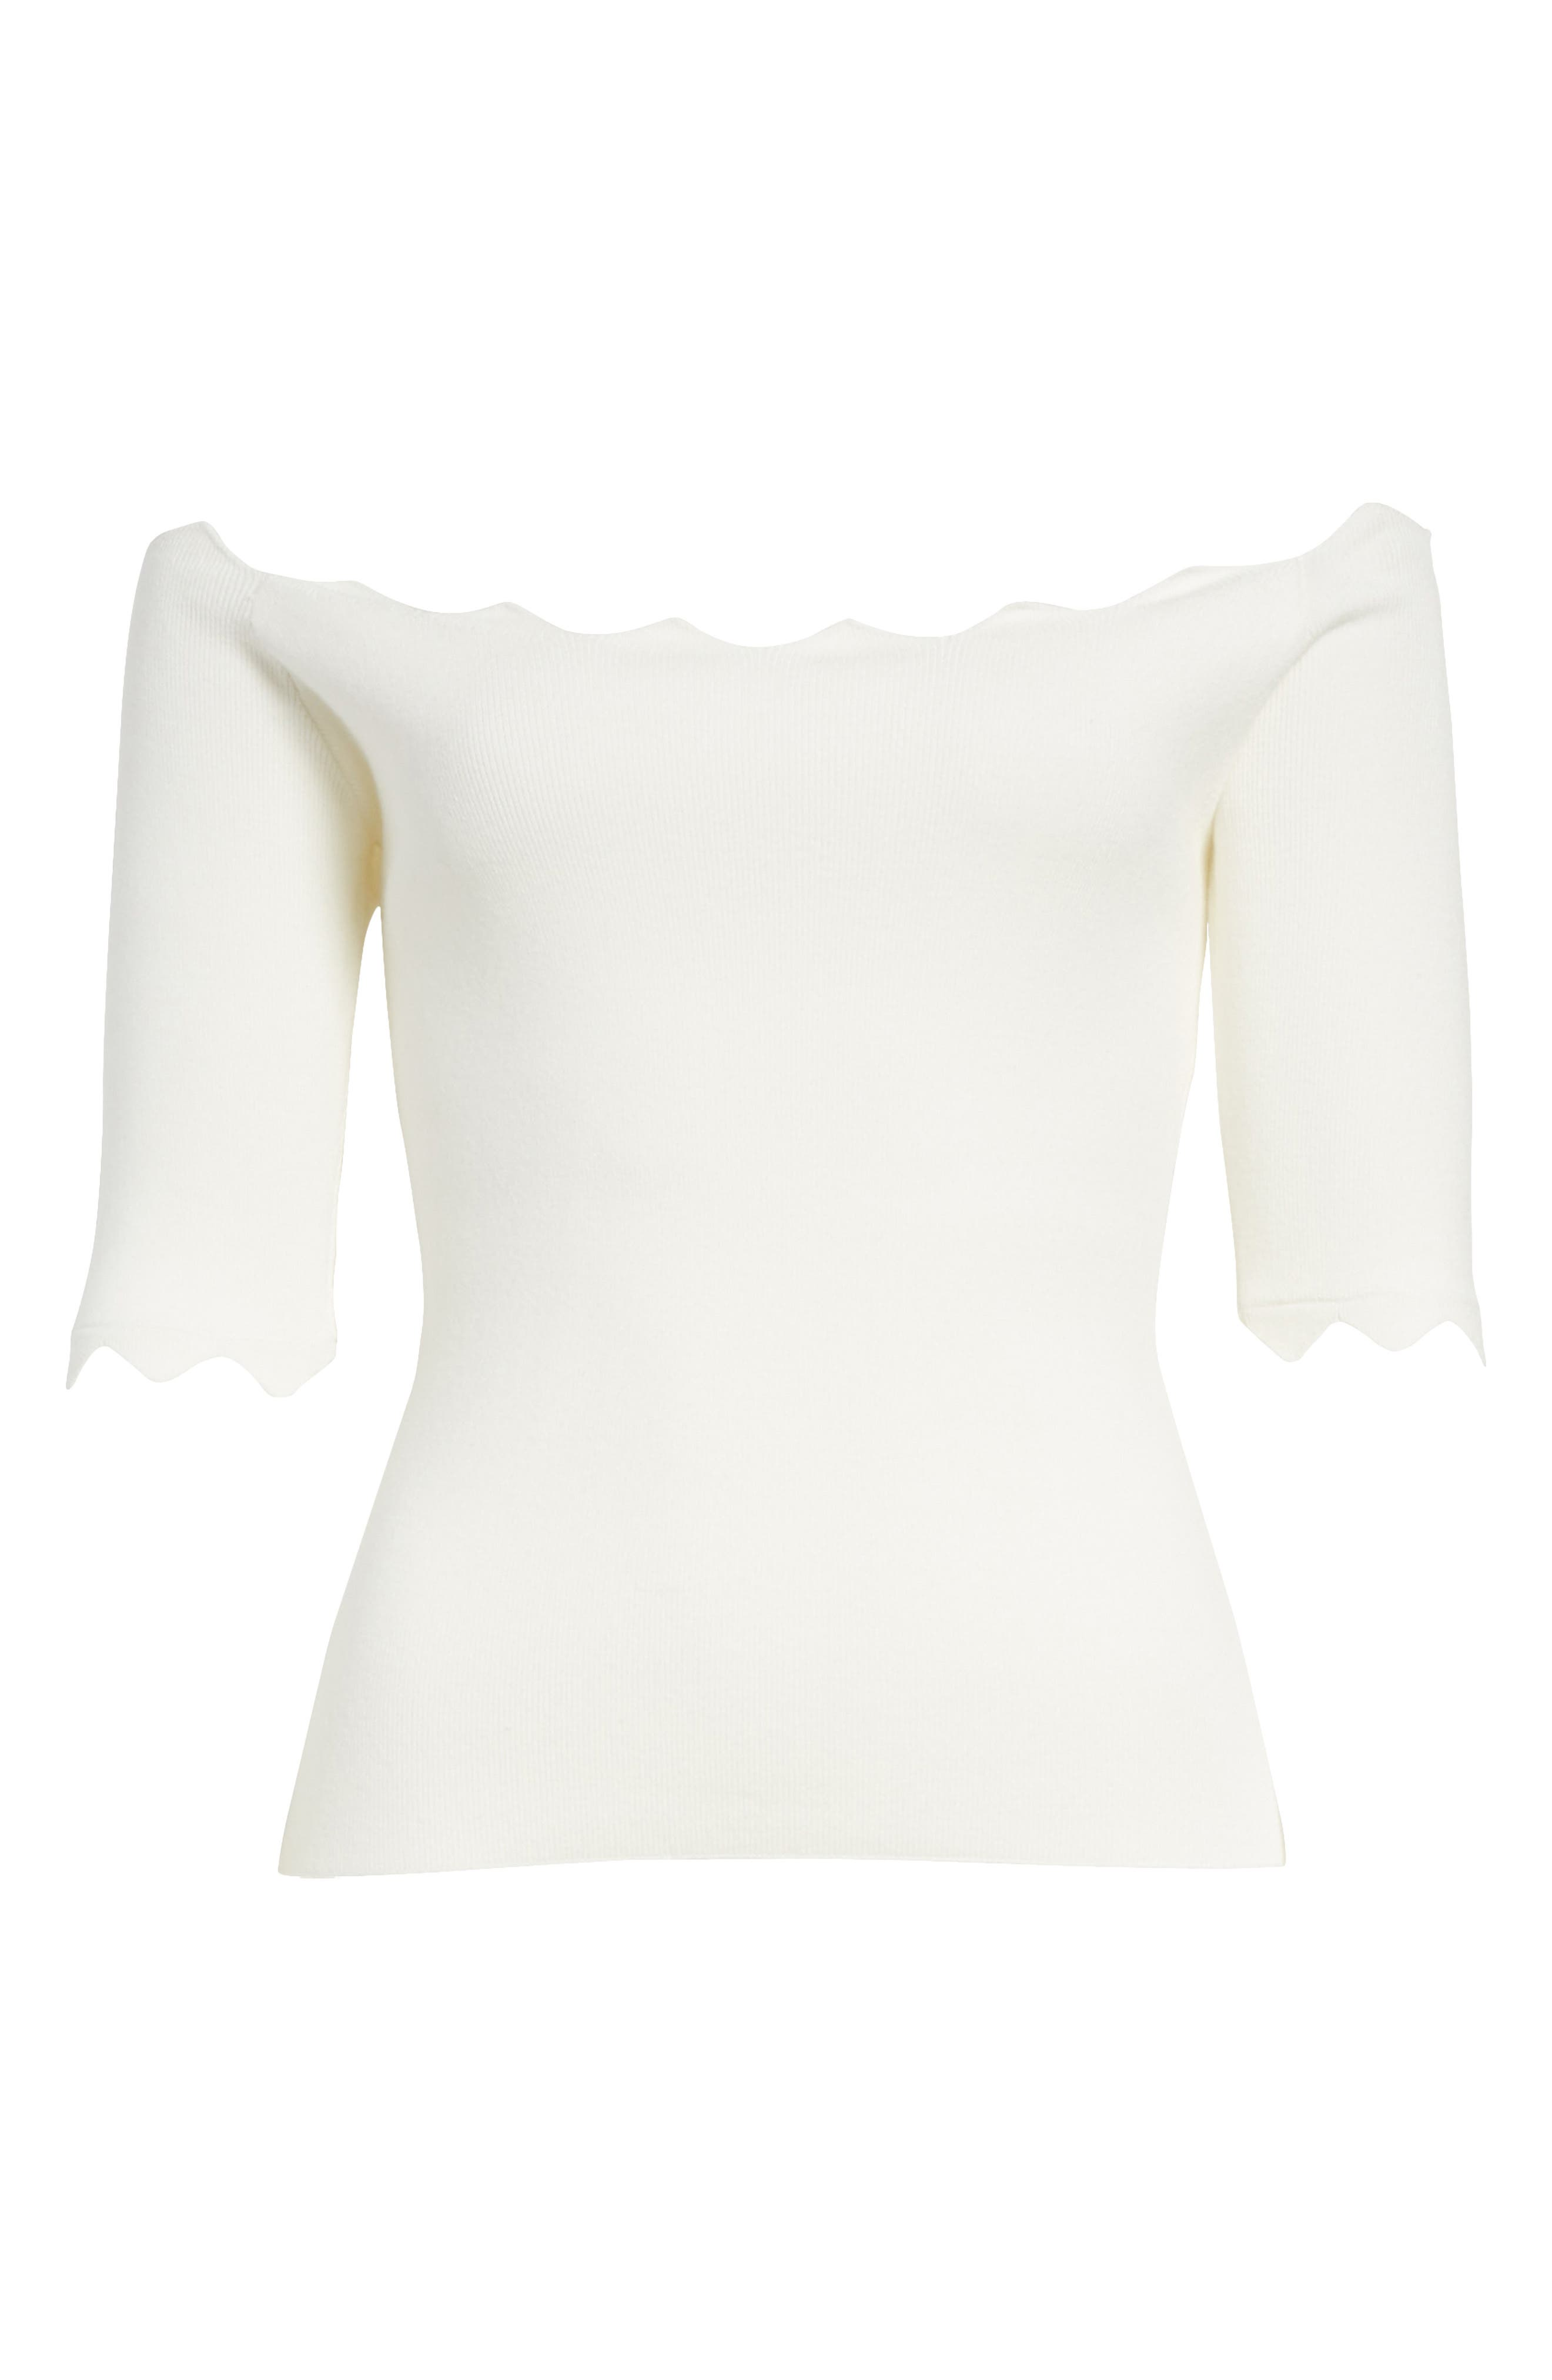 Scalloped Off the Shoulder Sweater,                             Alternate thumbnail 6, color,                             150